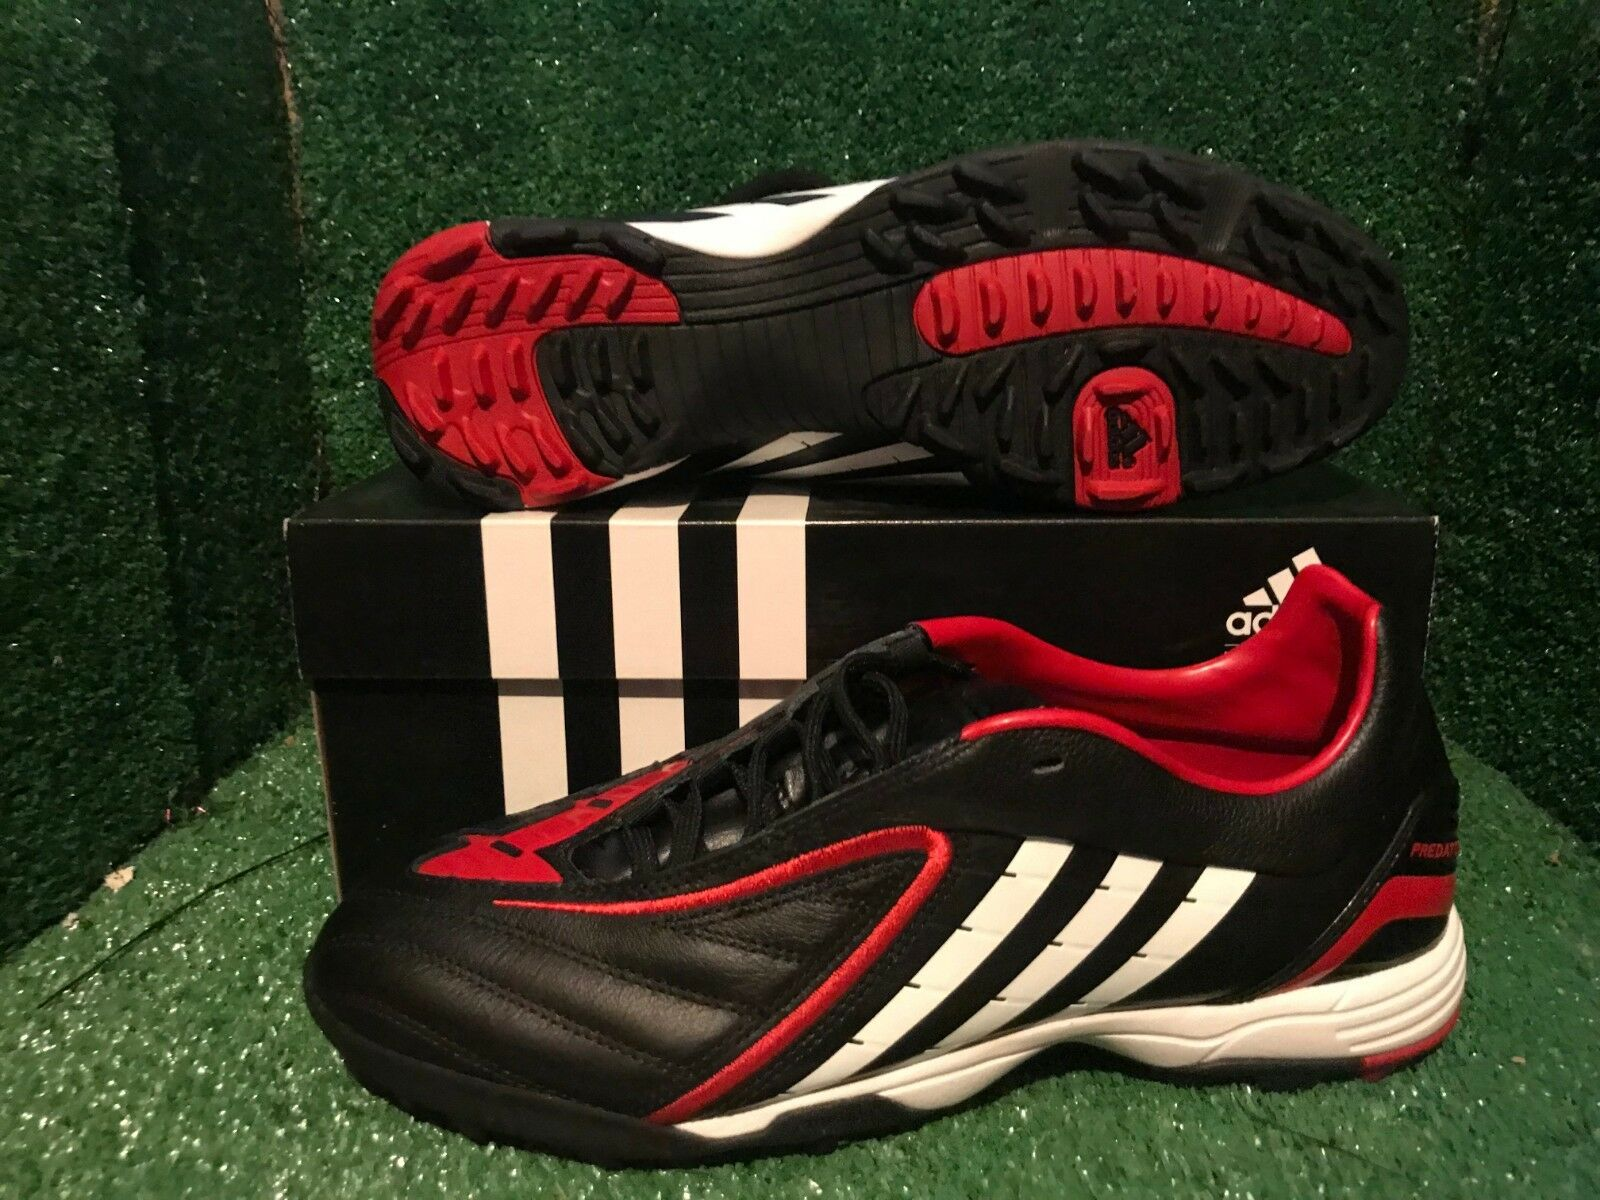 ADIDAS ProtATOR ABSOLADO PULSE I INDOOR TURF TRAINERS 8,5 8 42